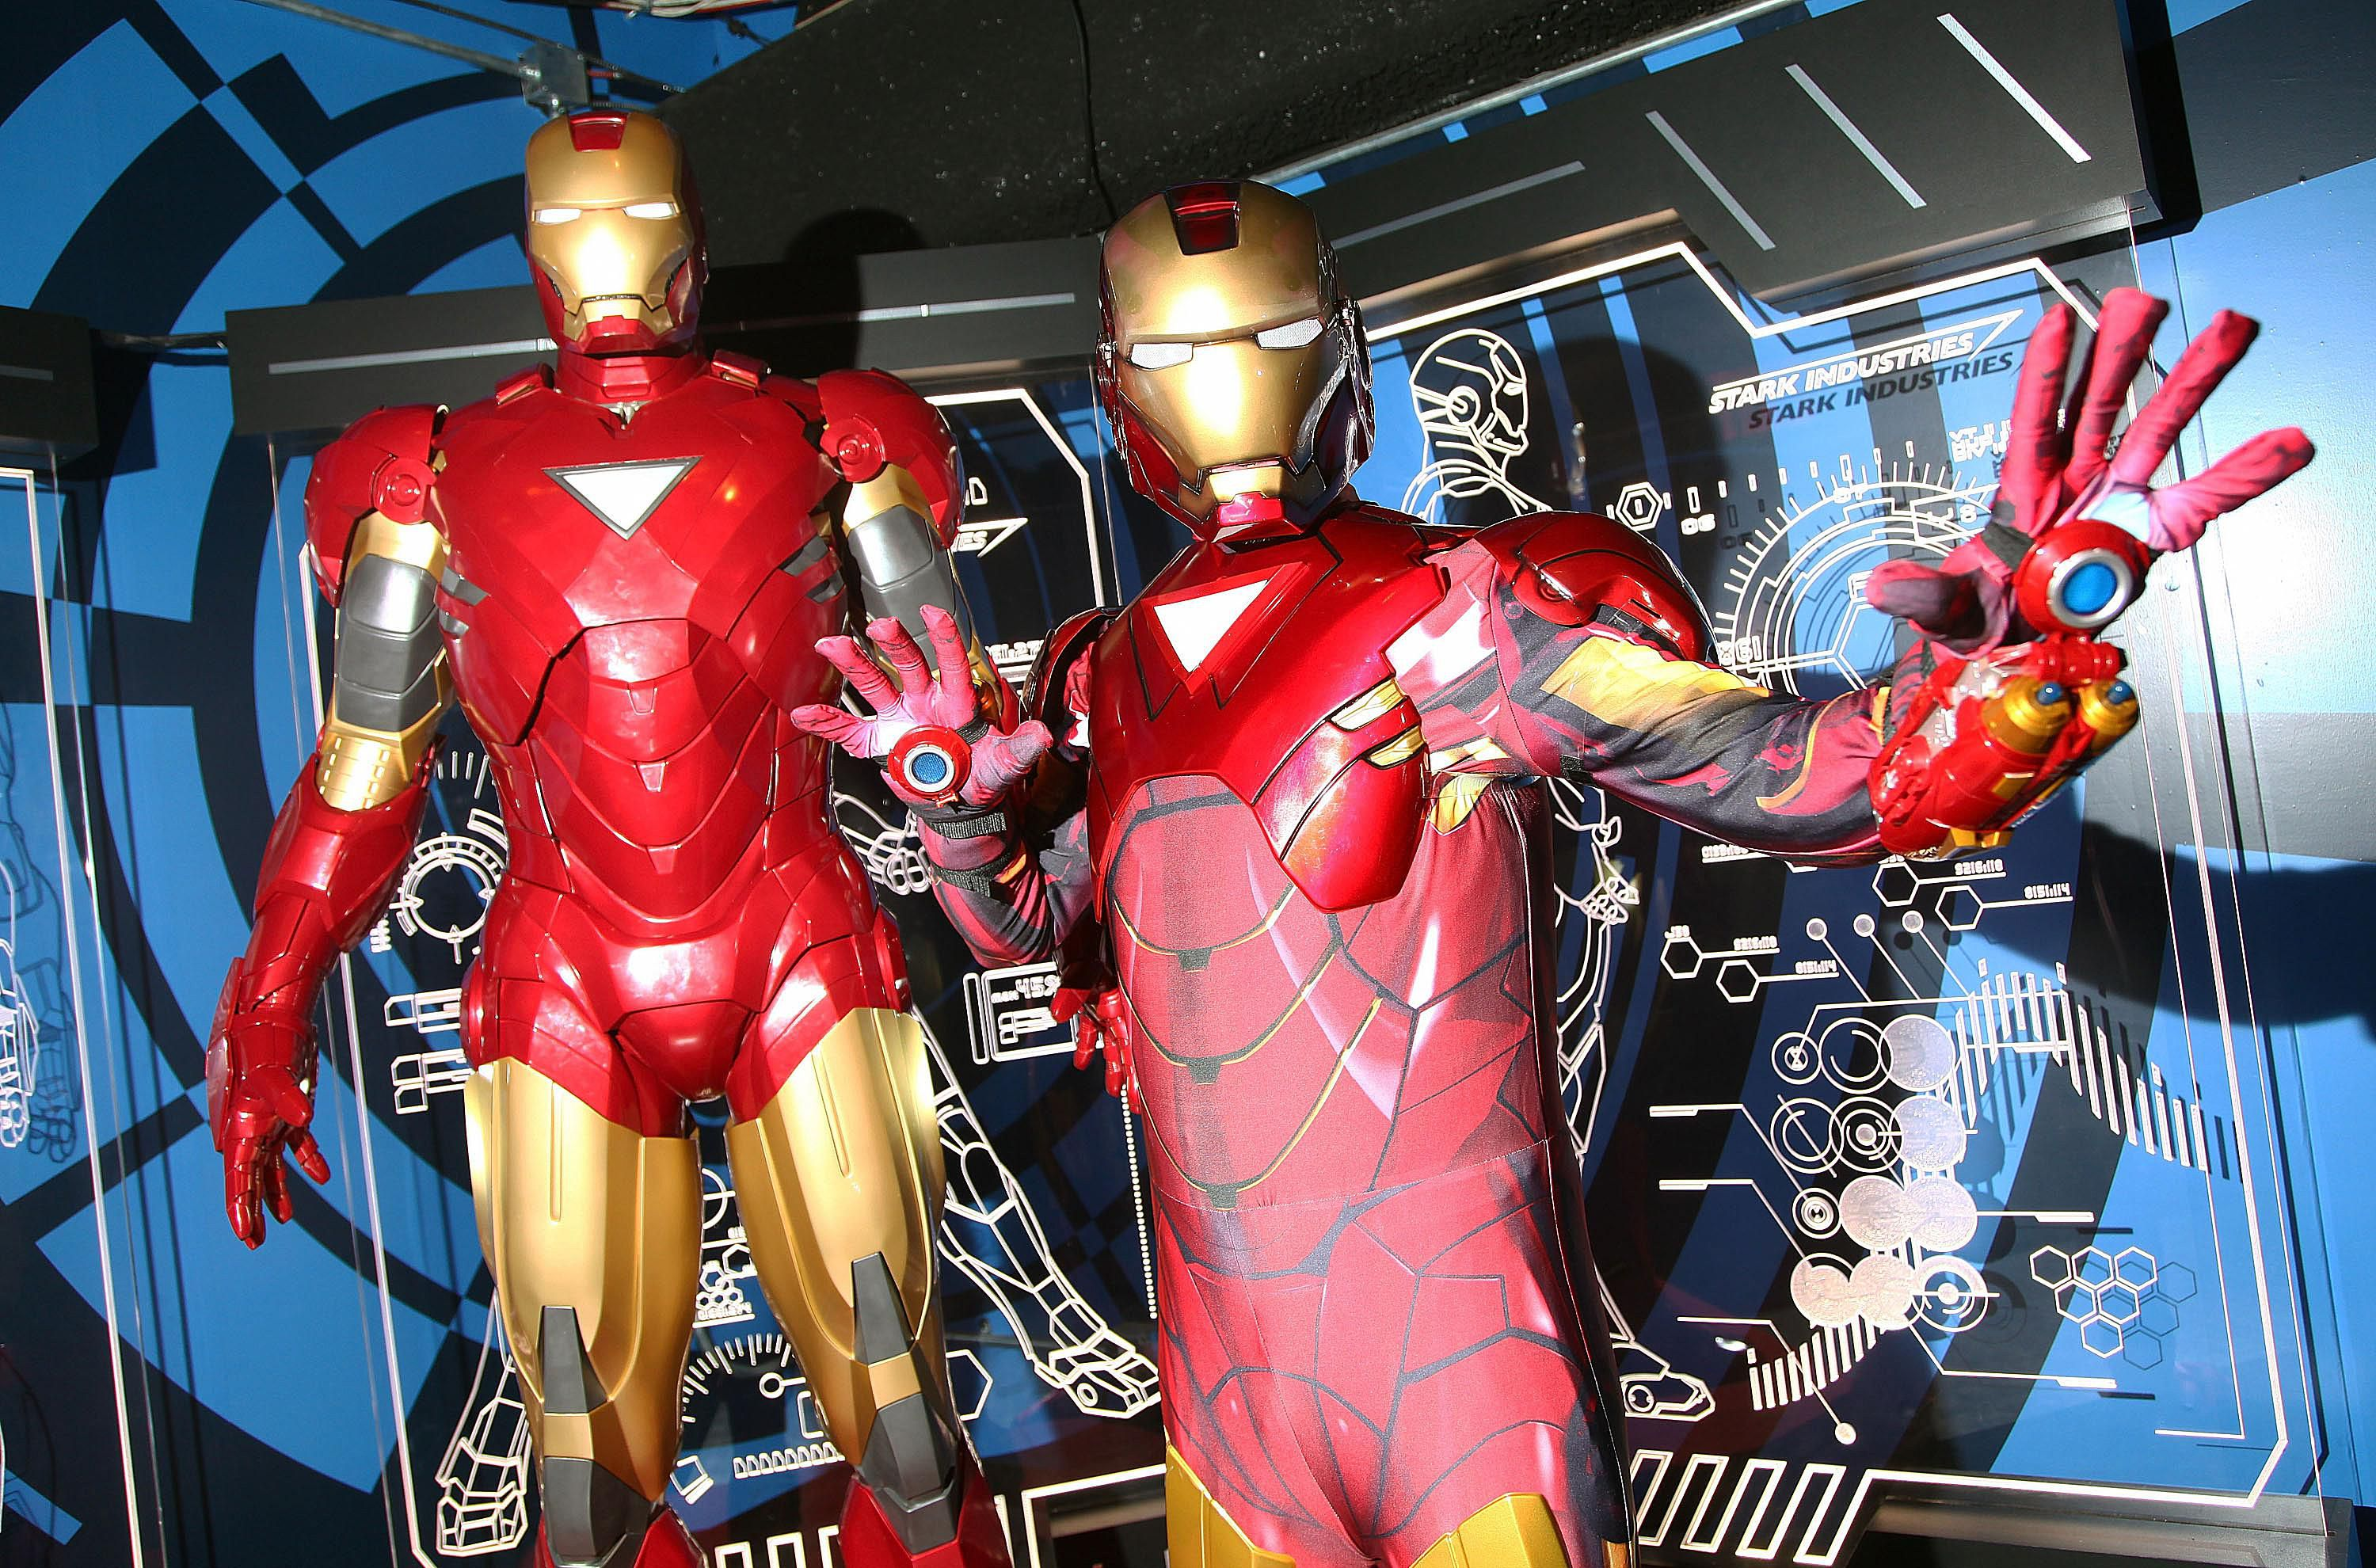 A costumed Iron Man poses with a wax Iron Man at Madame Tussauds in New York City.